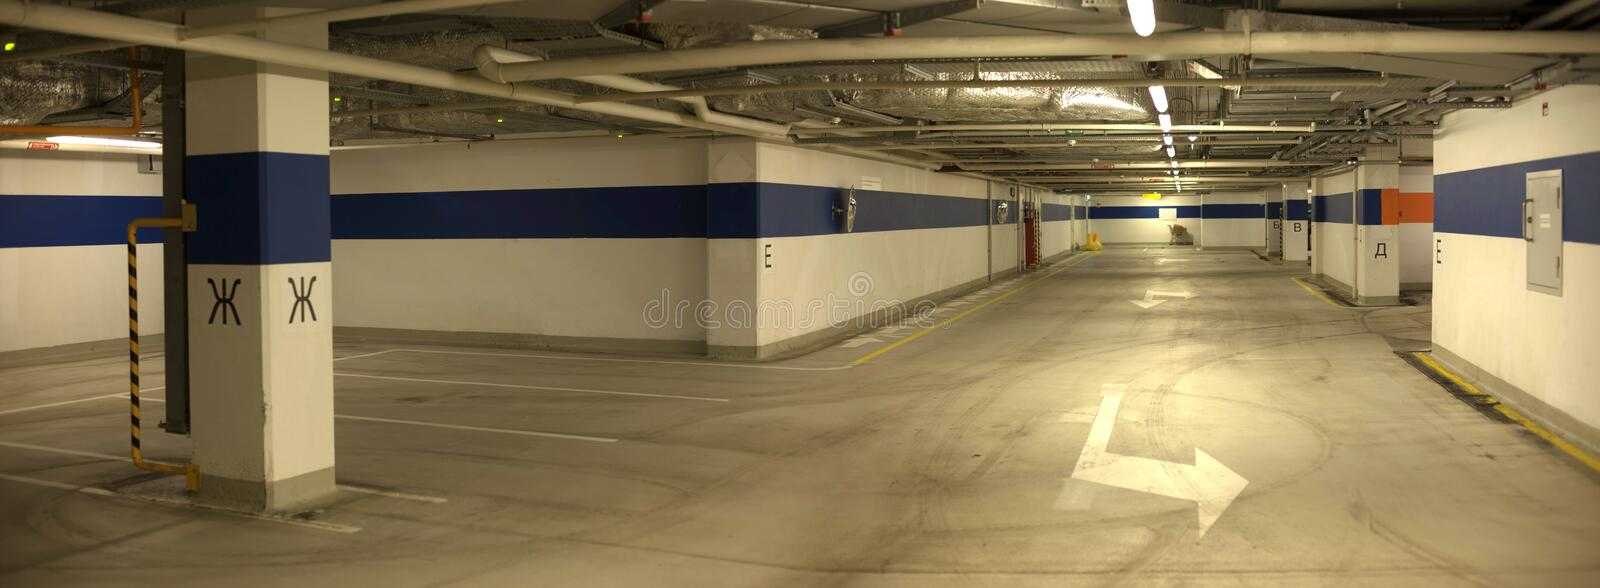 Download Underground Parking With Cars. Stock Image - Image: 37464445